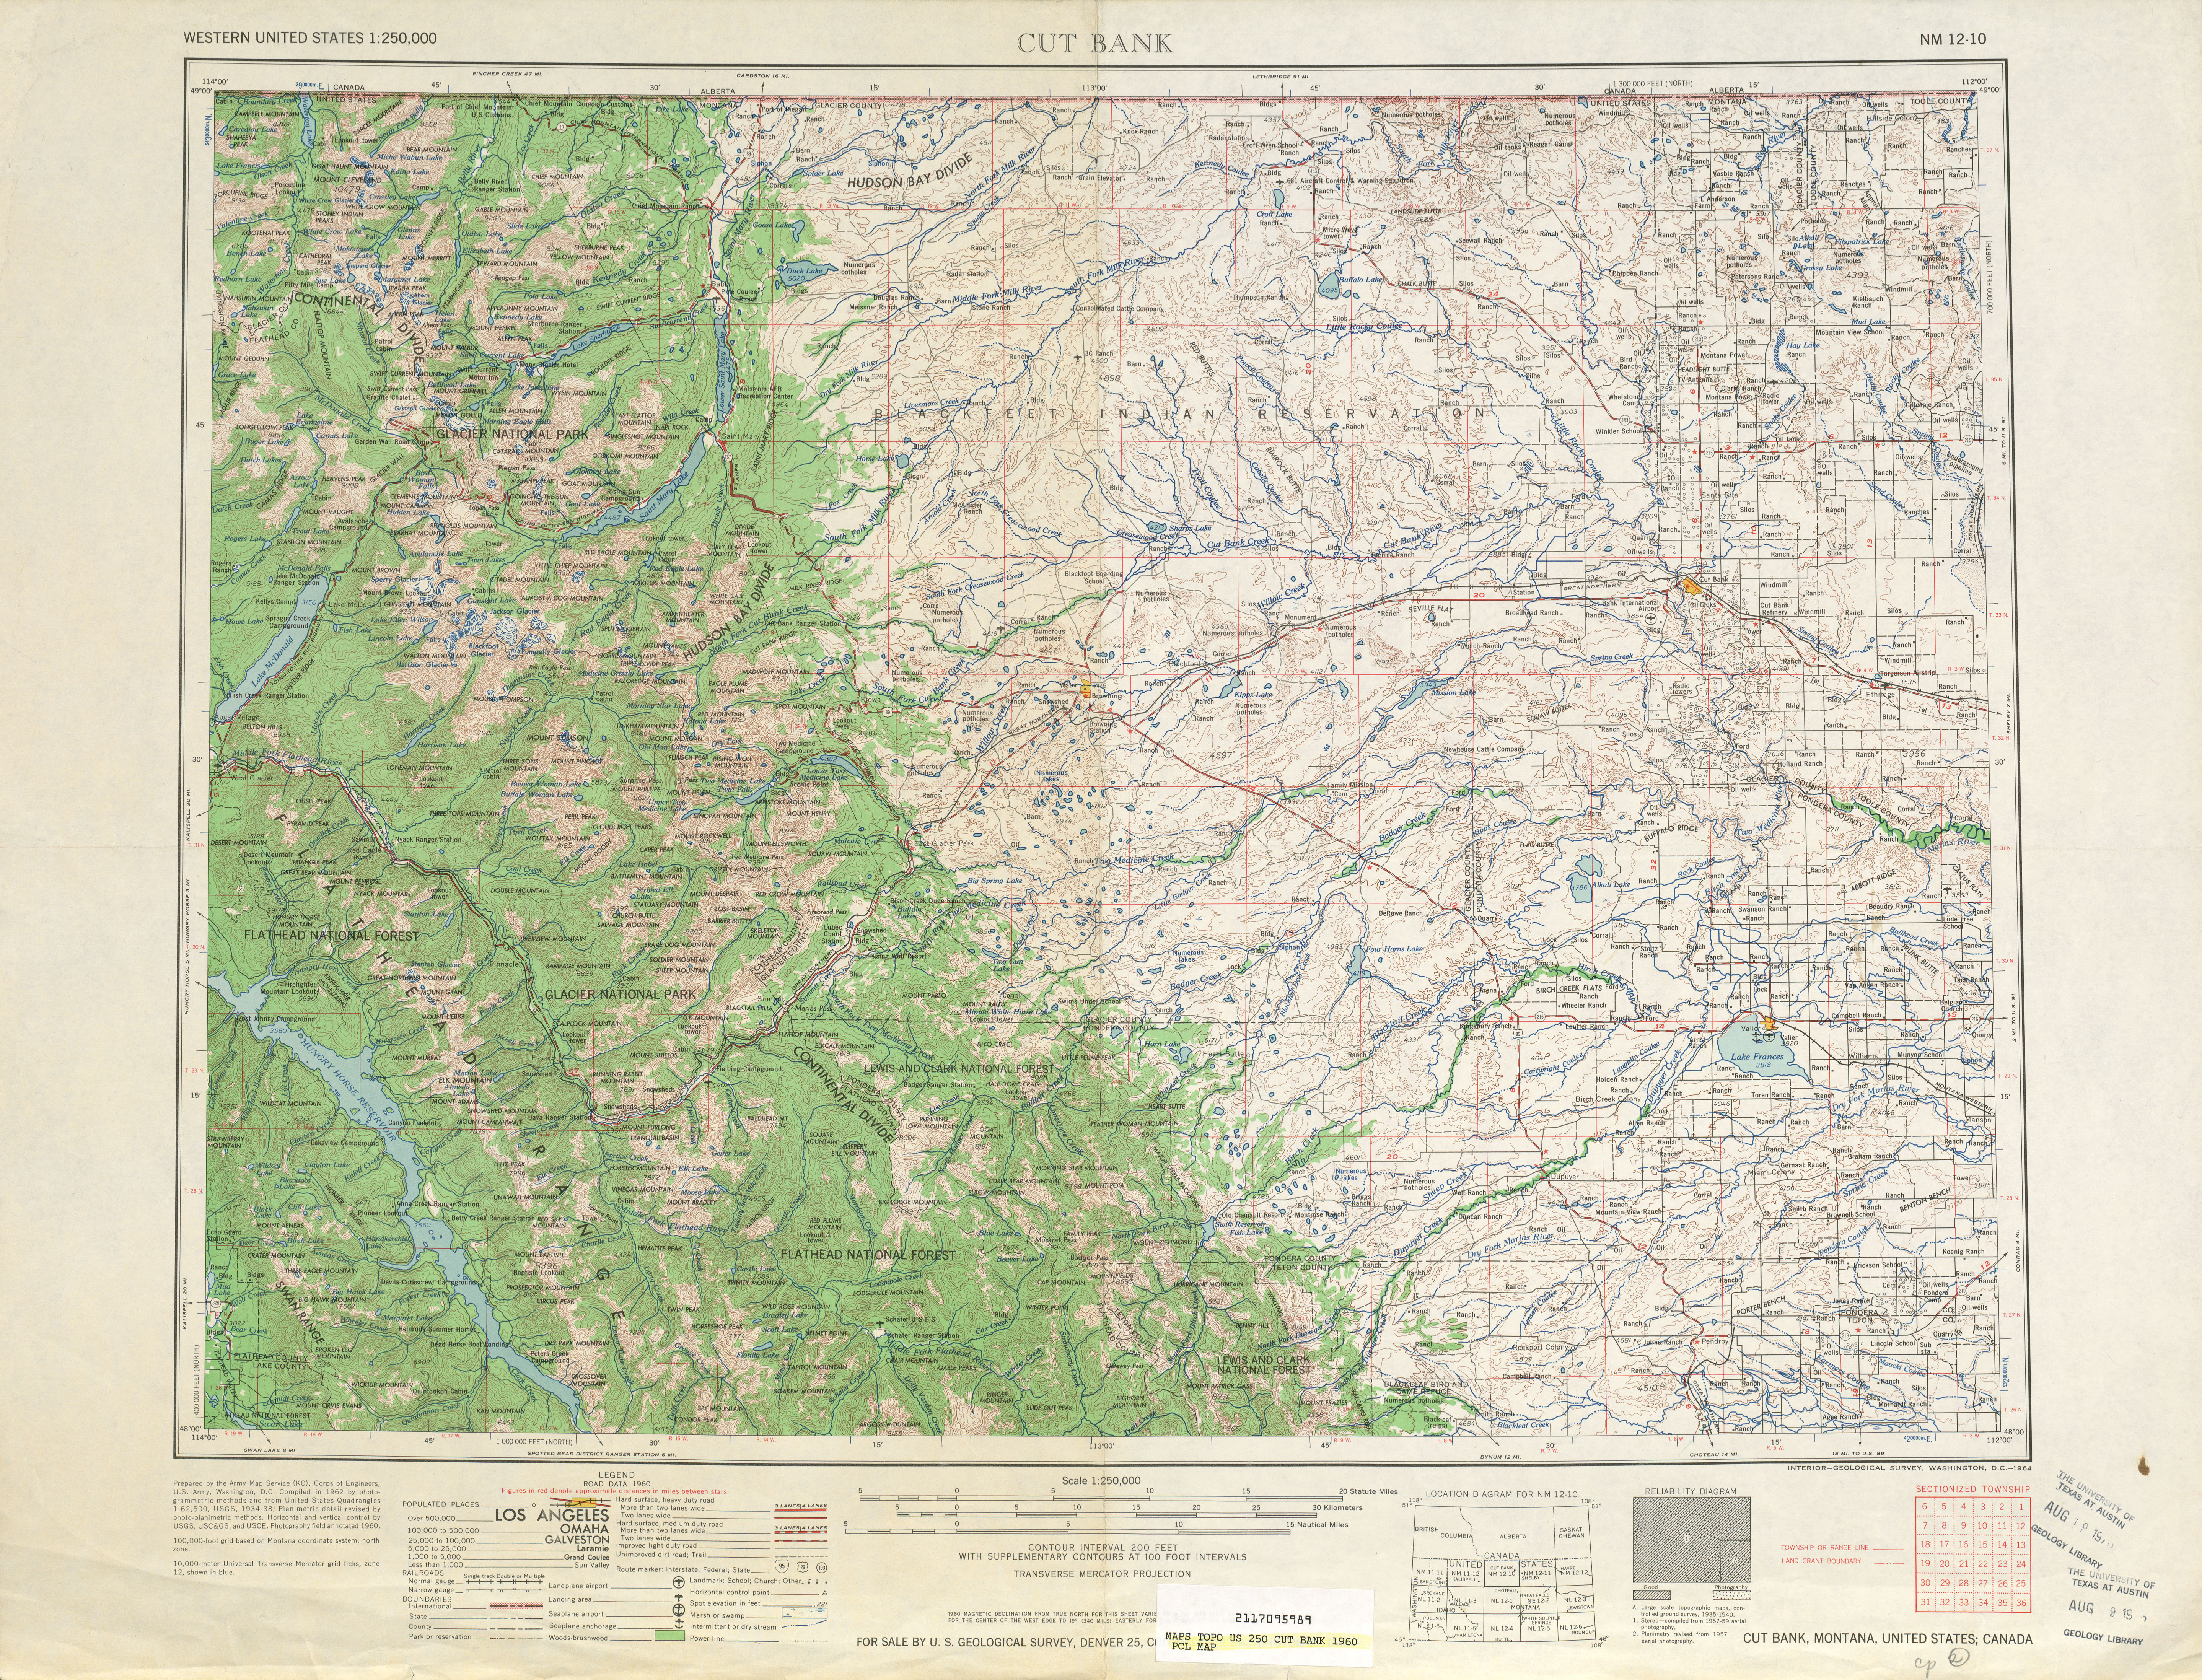 Cut Bank Topographic Map Sheet, United States 1960